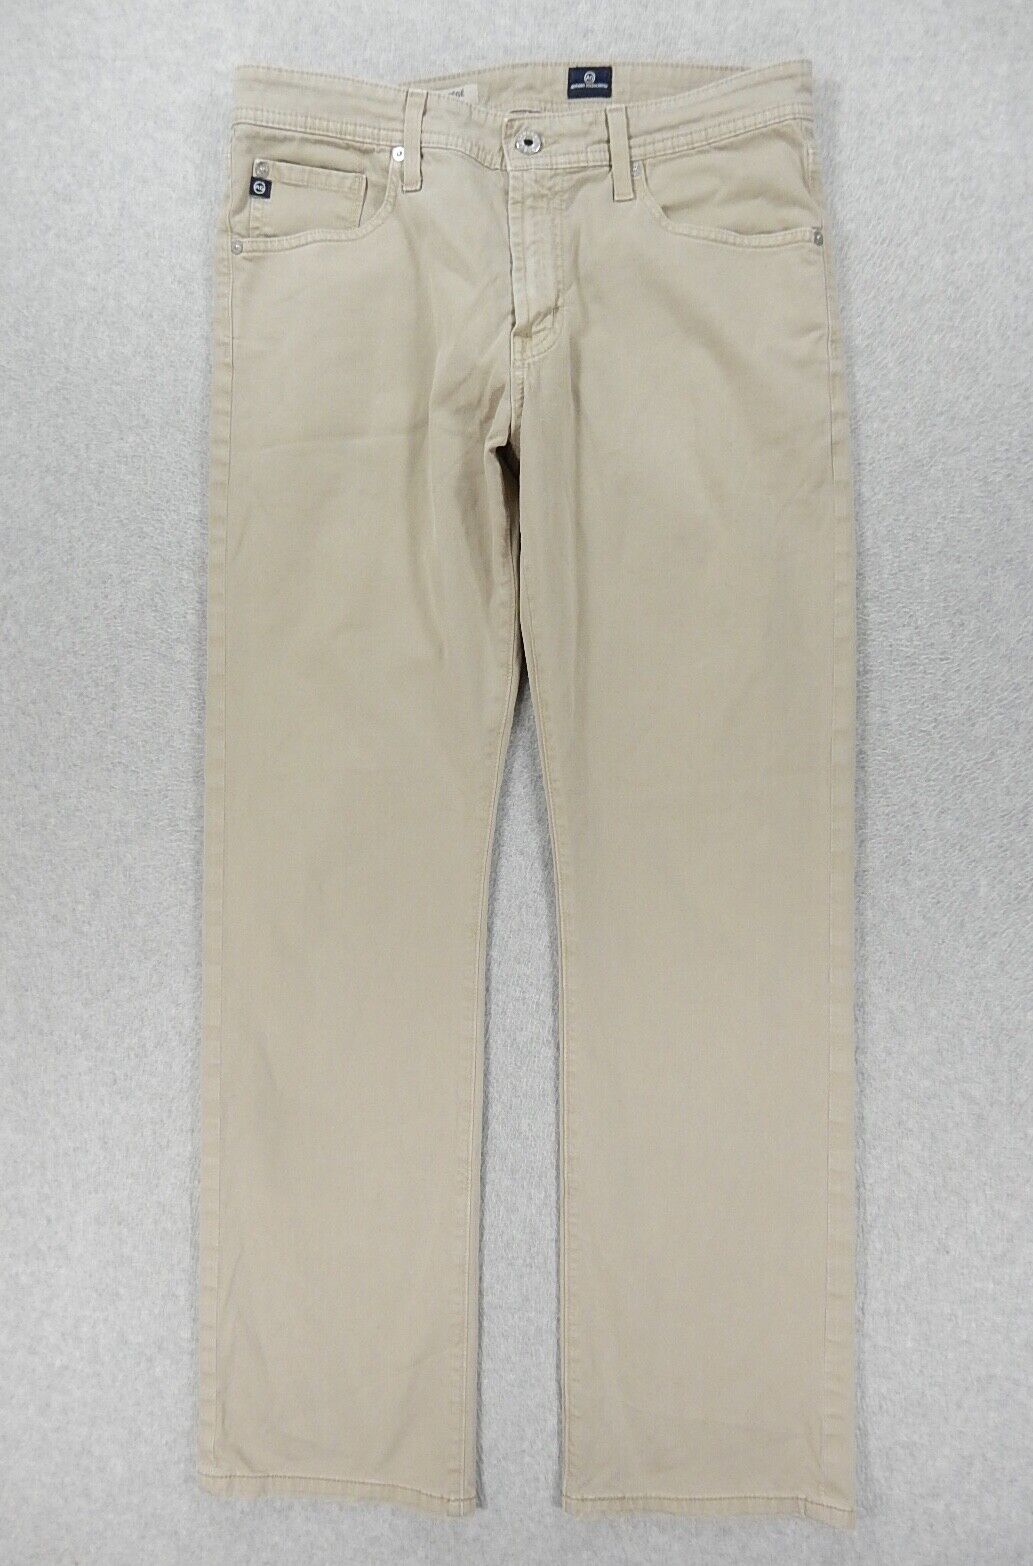 Adriano goldschmied THE PredEGE Straight Leg Pants (Mens 32x32) Tan